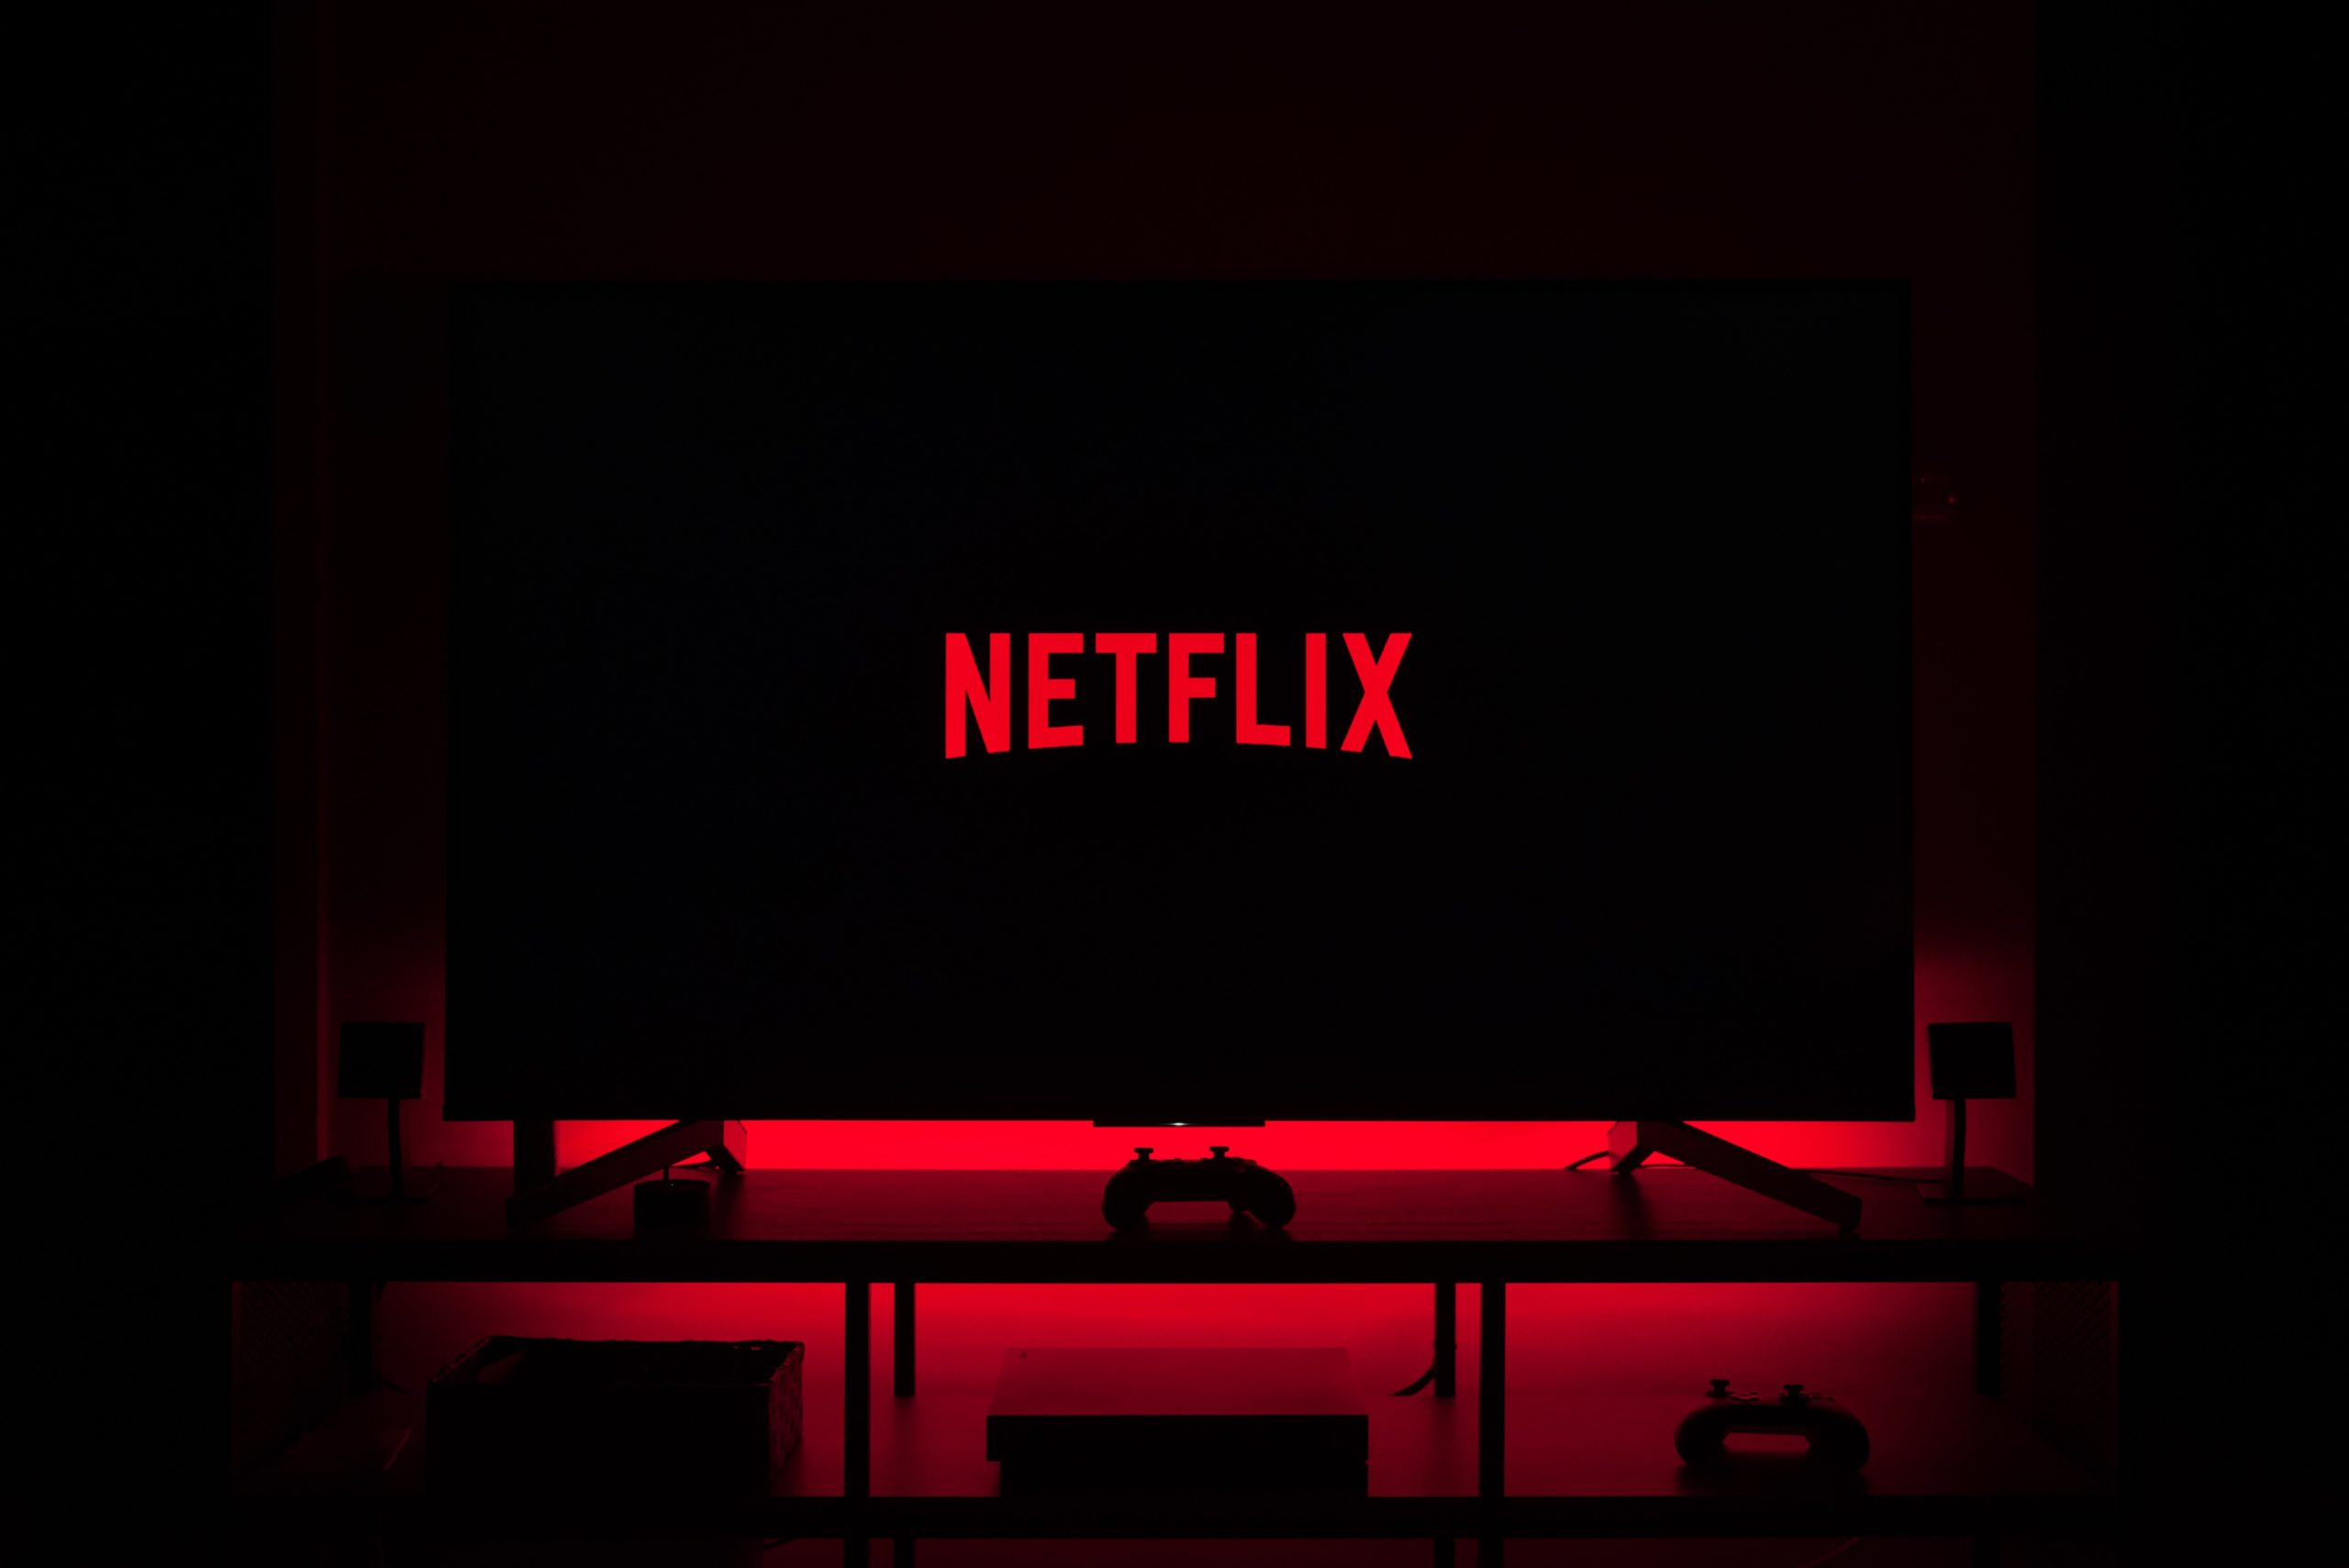 netflix on tv screen to survive winter